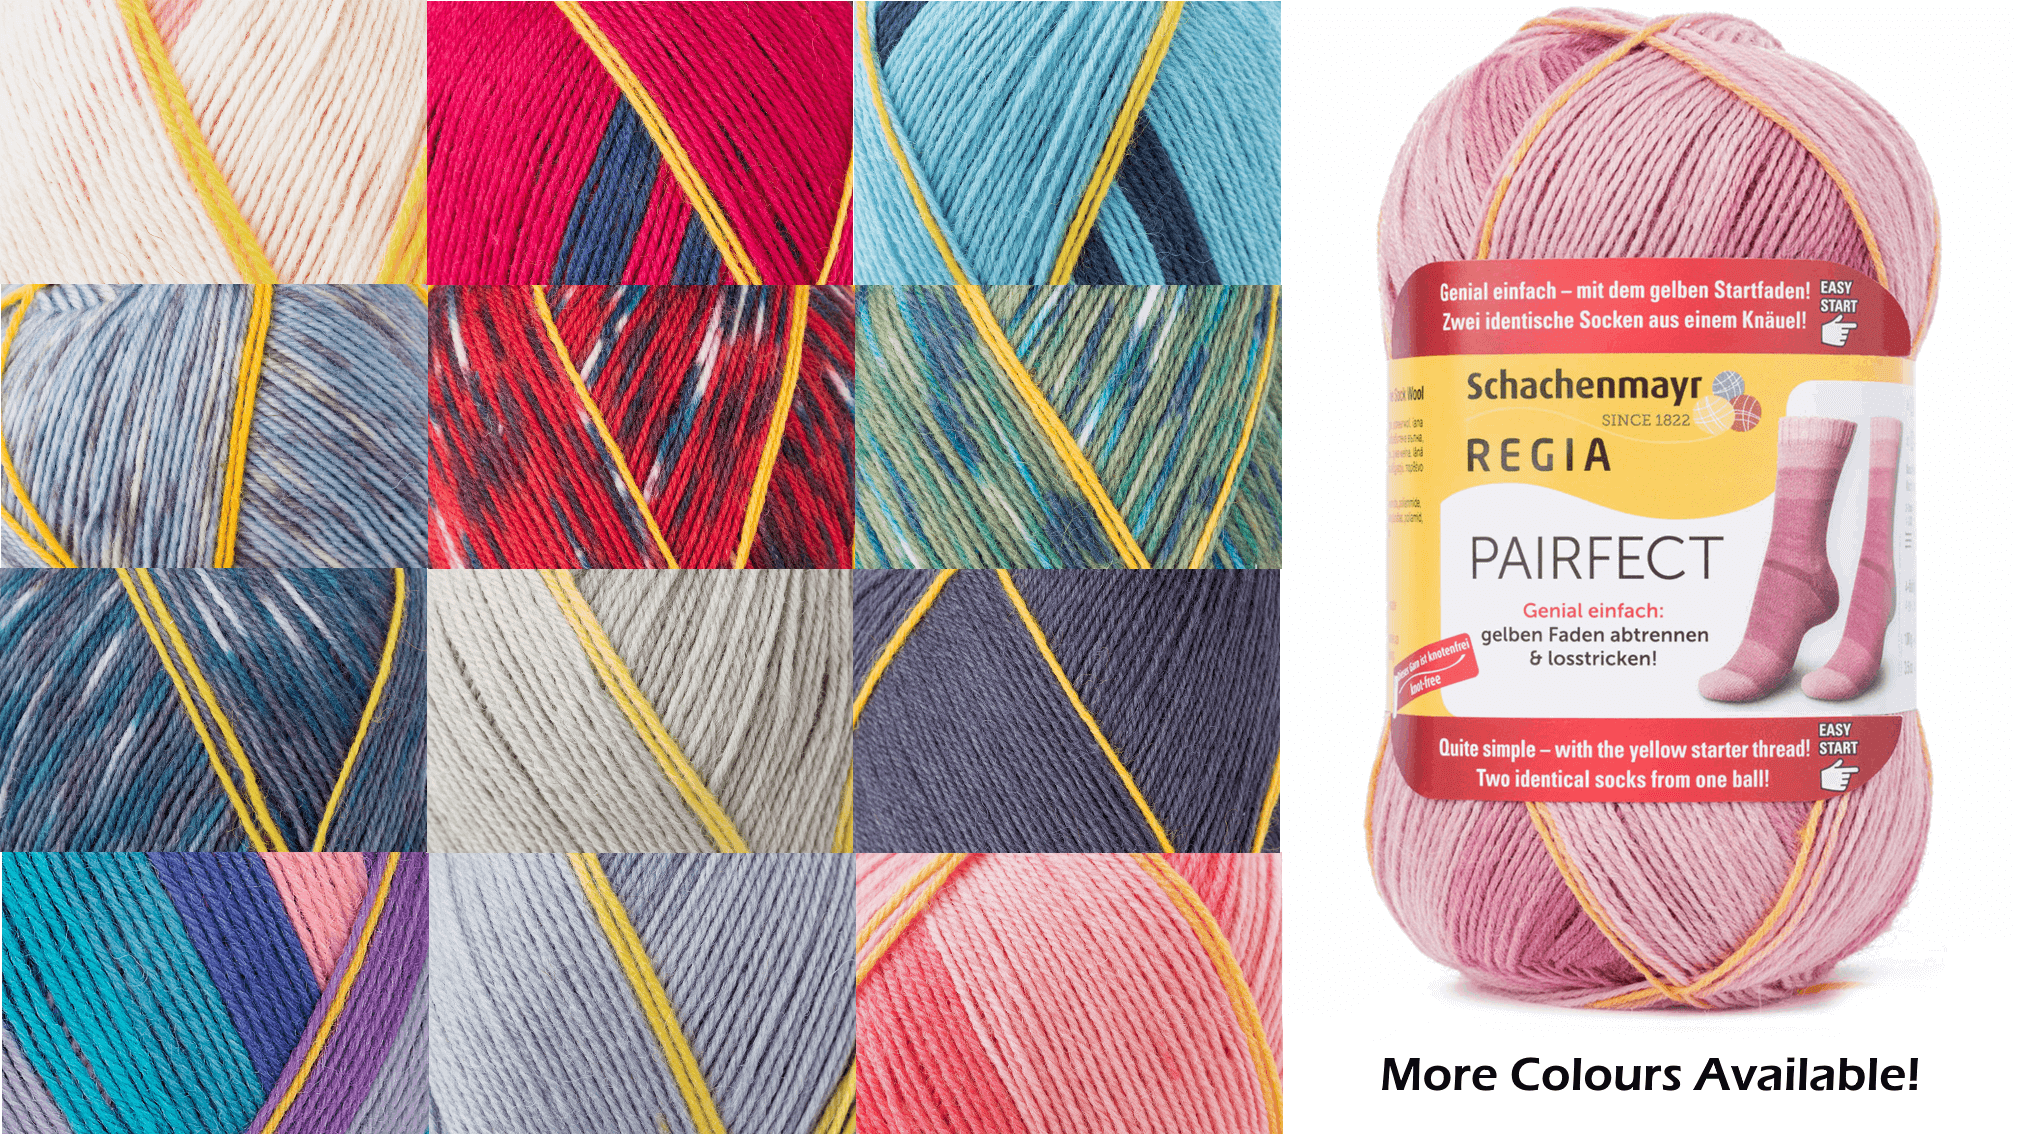 Regia Pairfect Editions 1 2 3 & 4 Socks 4 PLY Knitting Yarn Craft 100g Ball 7126 Edition 2 Granite